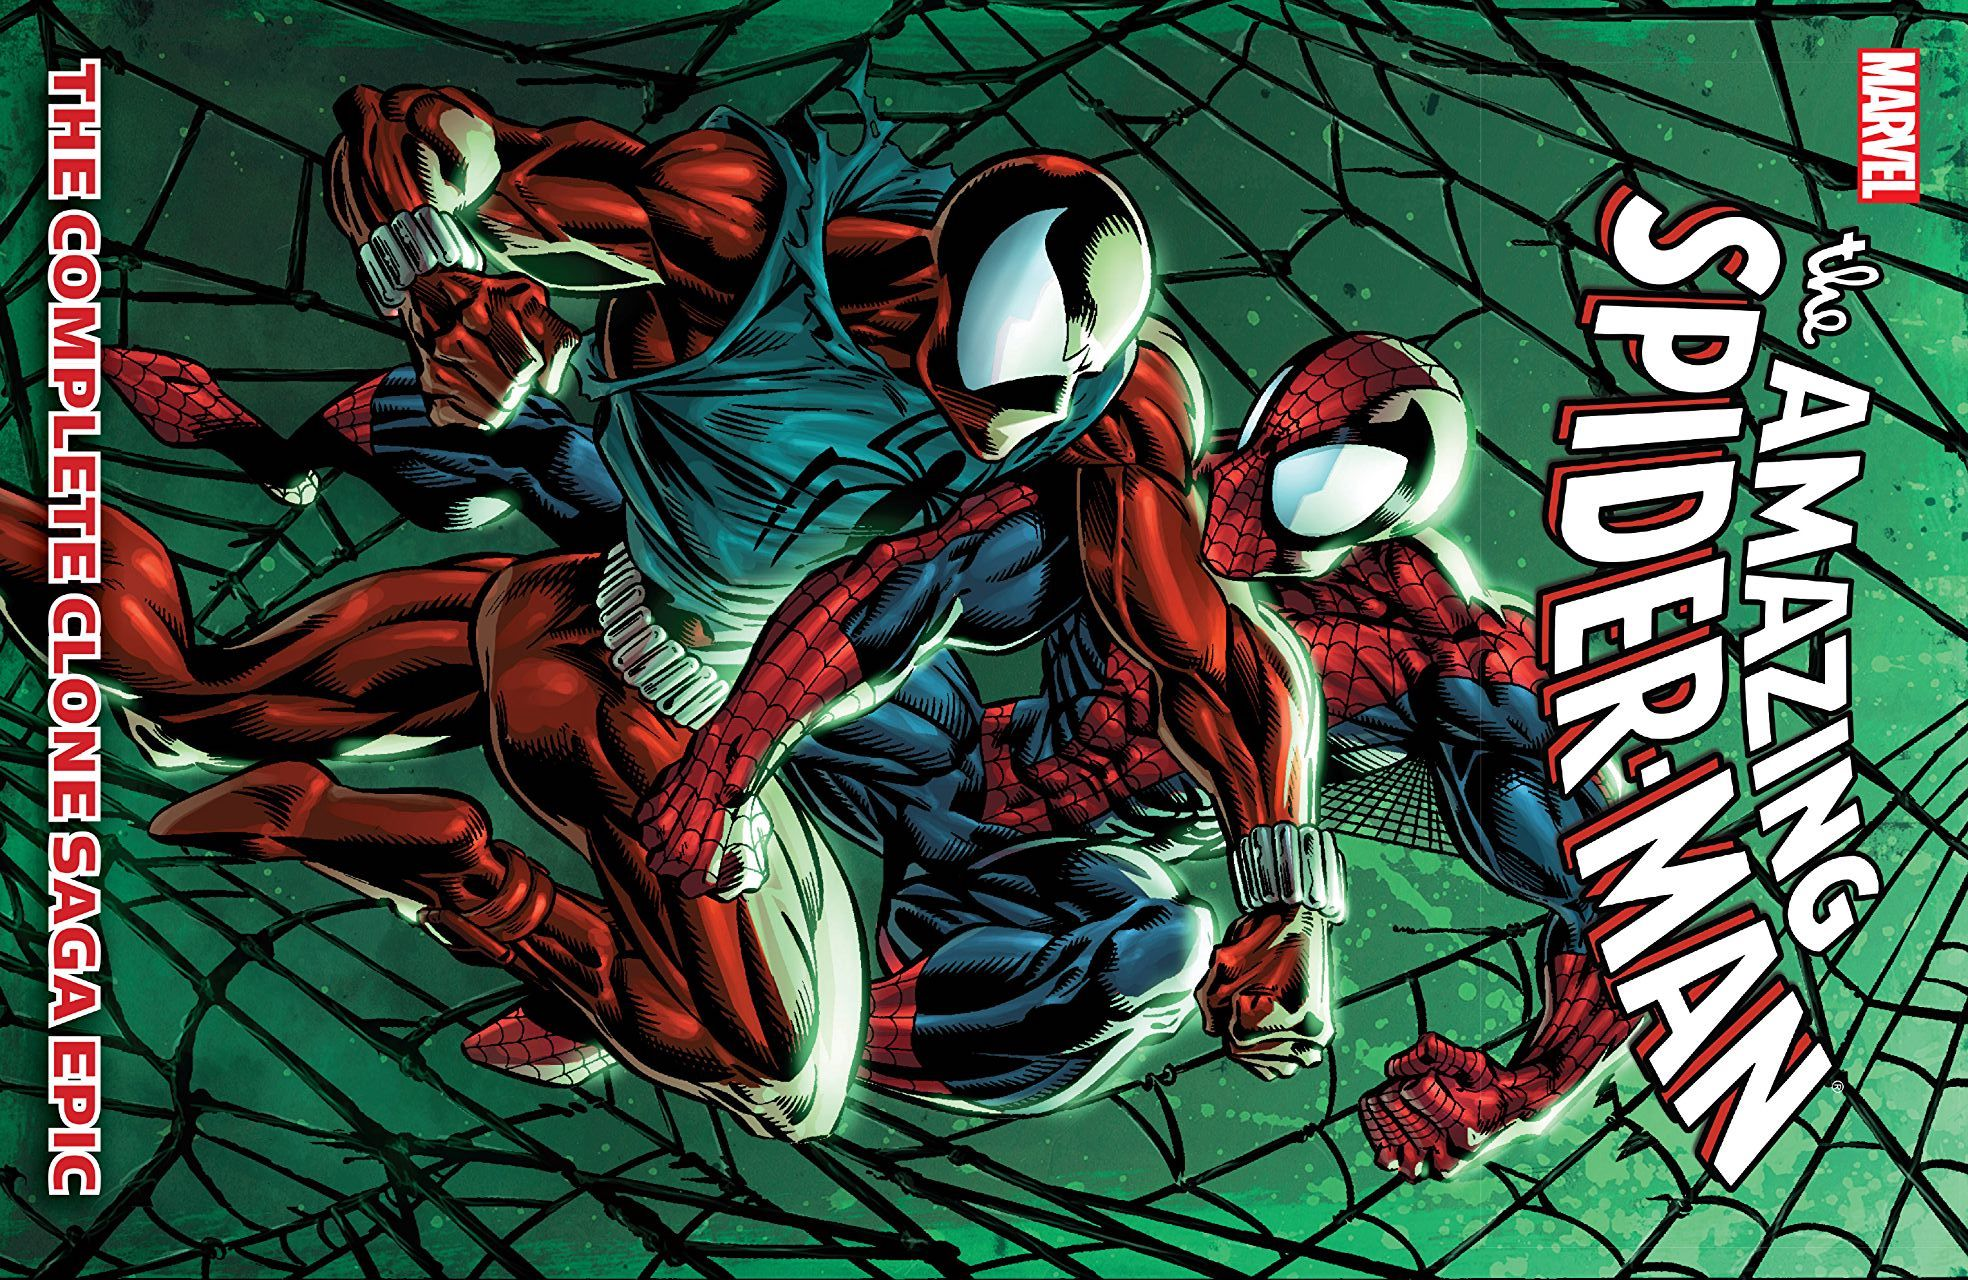 When the Wheels Fell Off: 'Spider-Man: The Complete Clone Saga Epic Book 4' Review